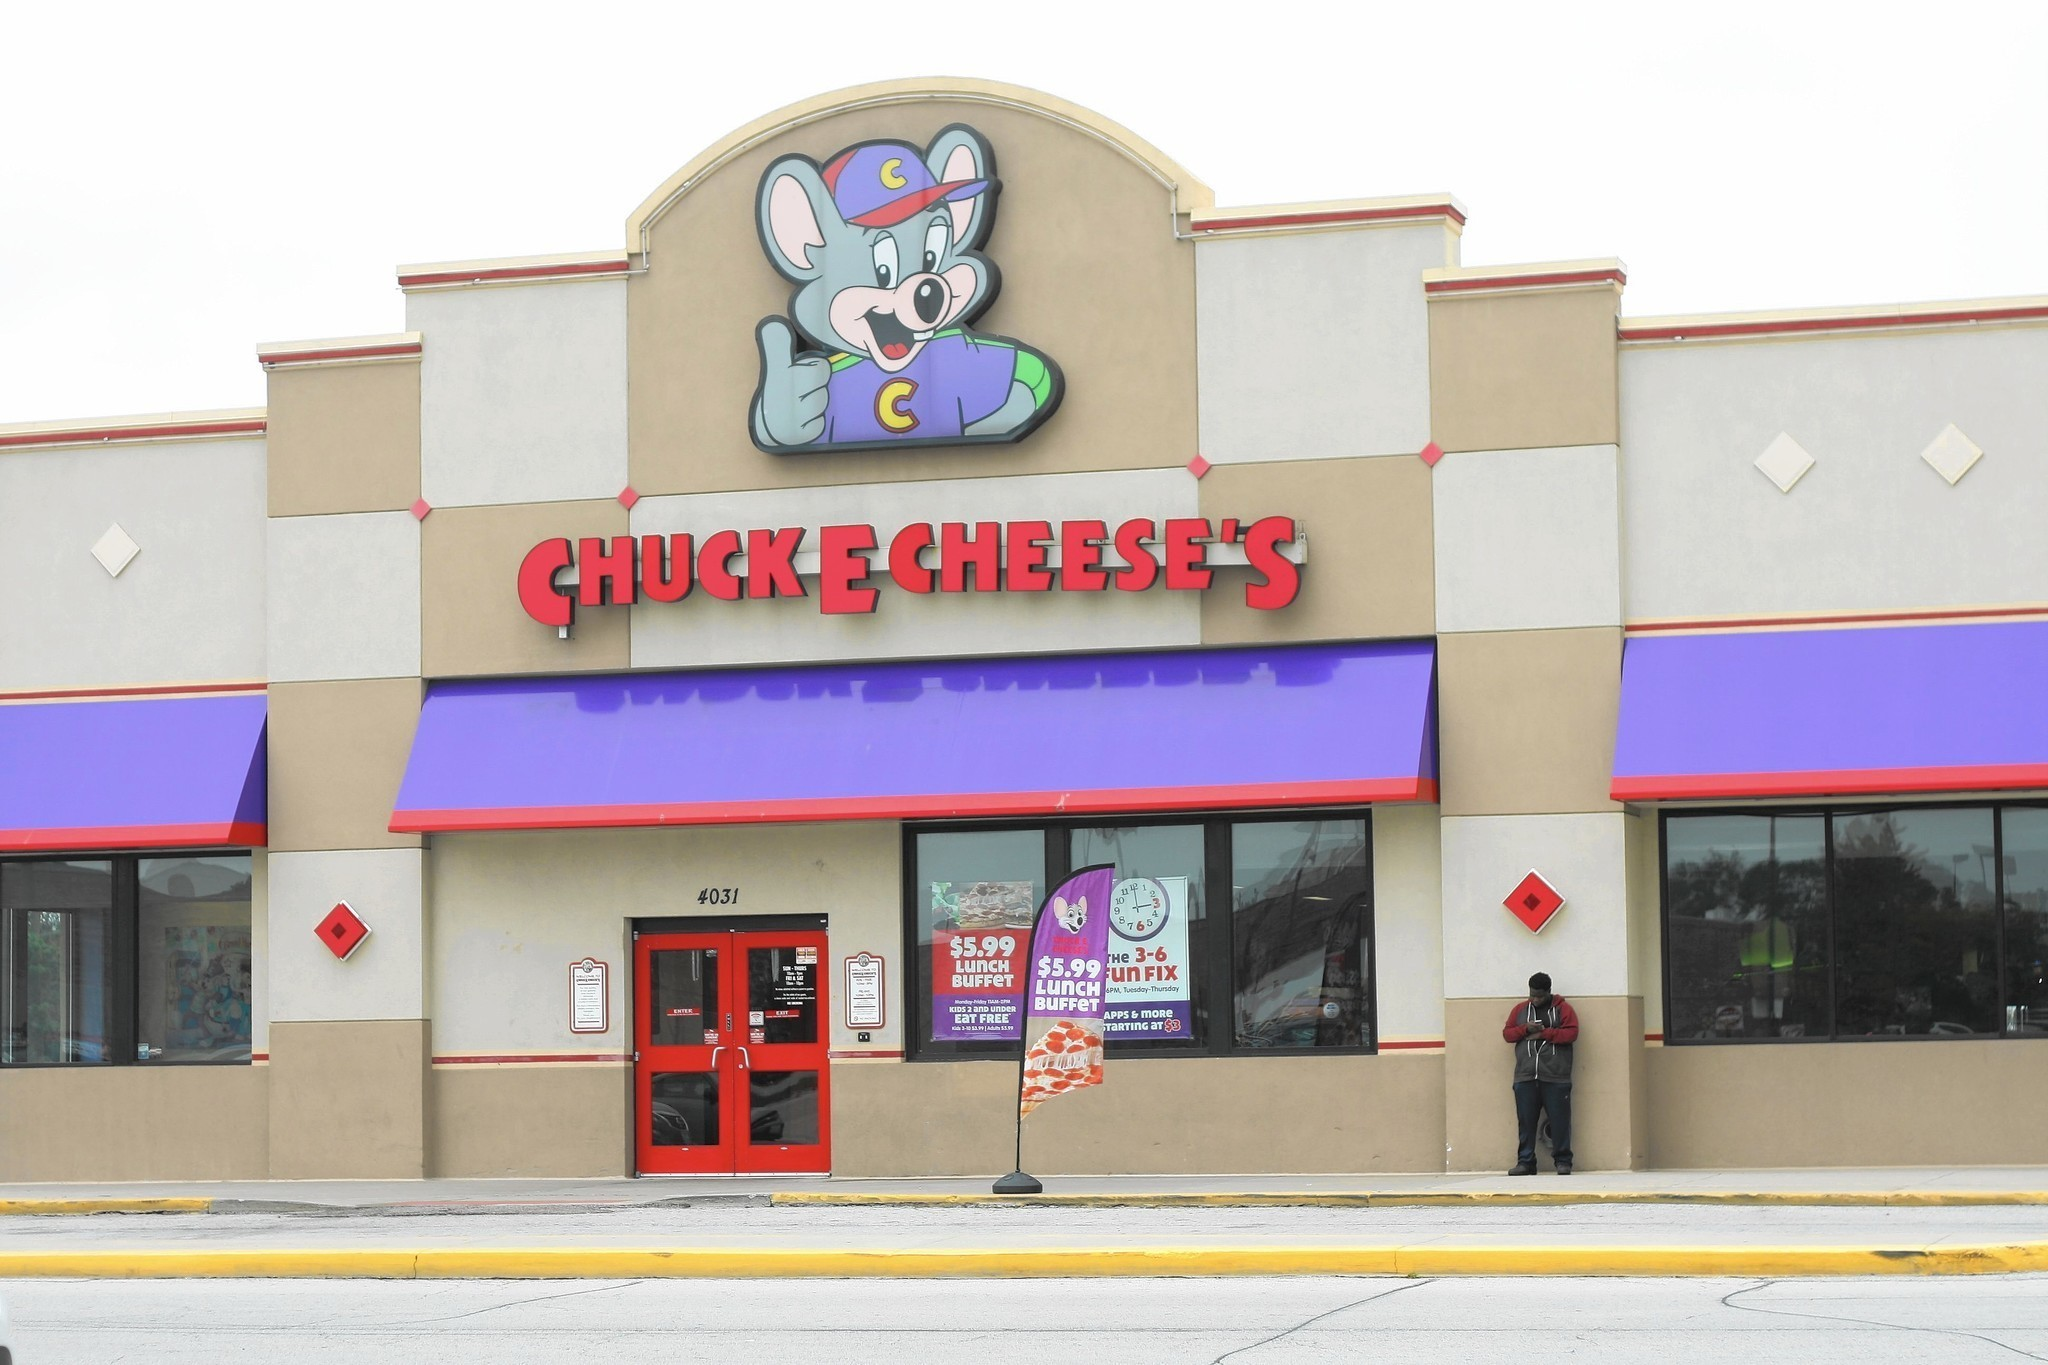 Find Chuck E. Cheese's locations near you. See hours, menu, directions, photos, and tips for the 4 Chuck E. Cheese's locations in Phoenix.